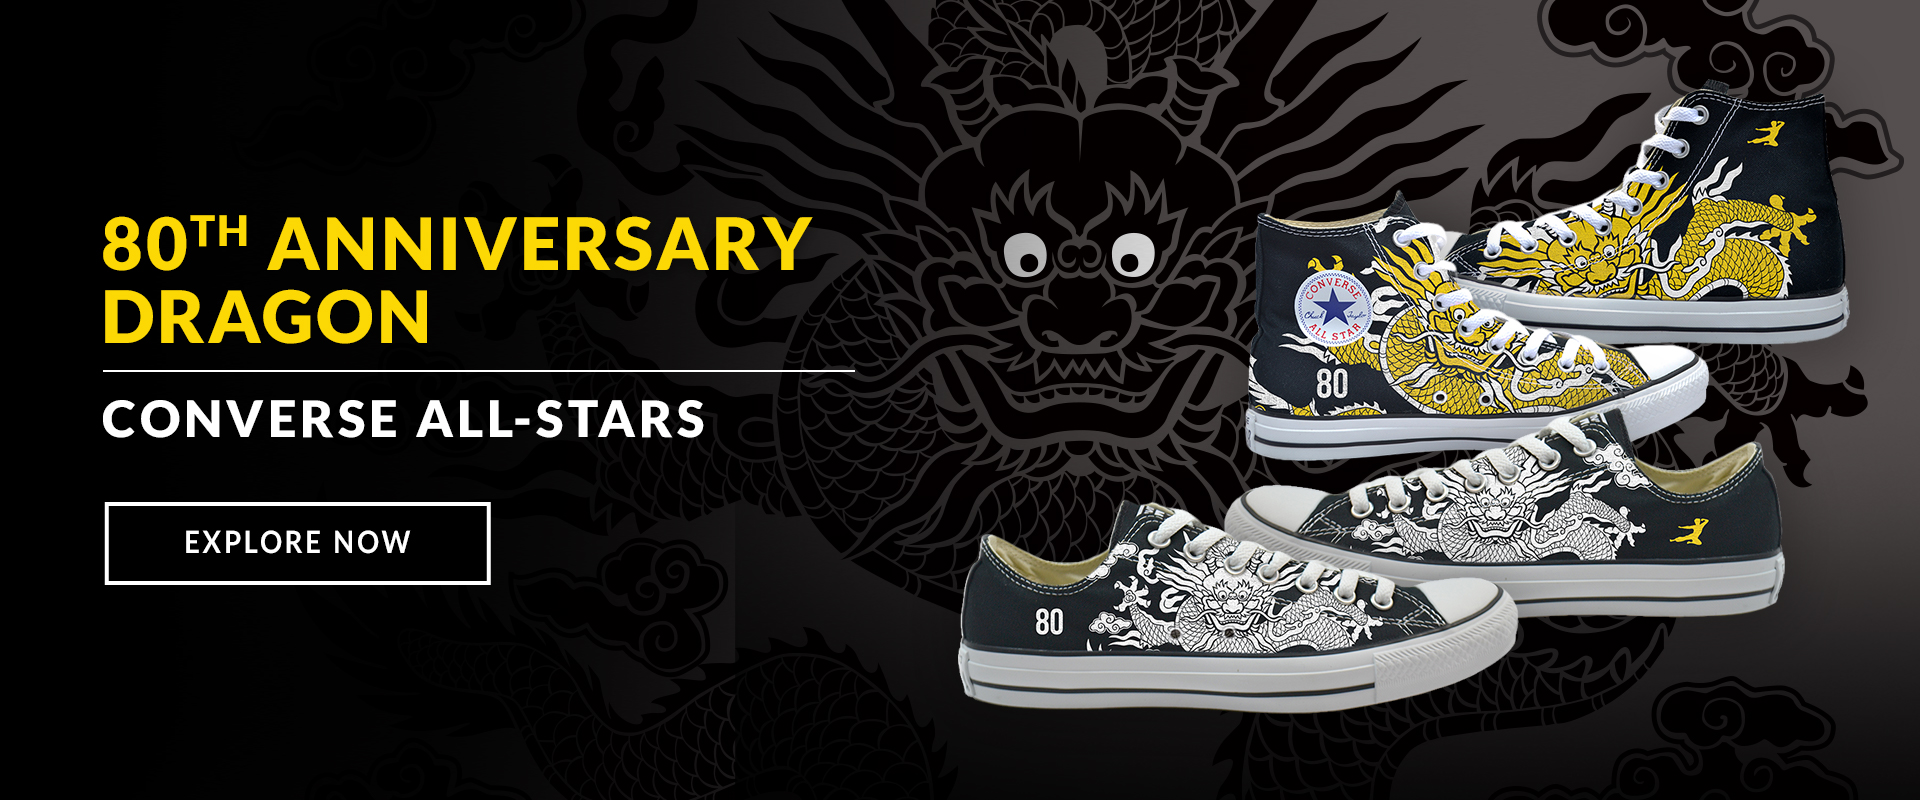 Bruce Lee 80th Anniversary Dragon Converse All-Stars